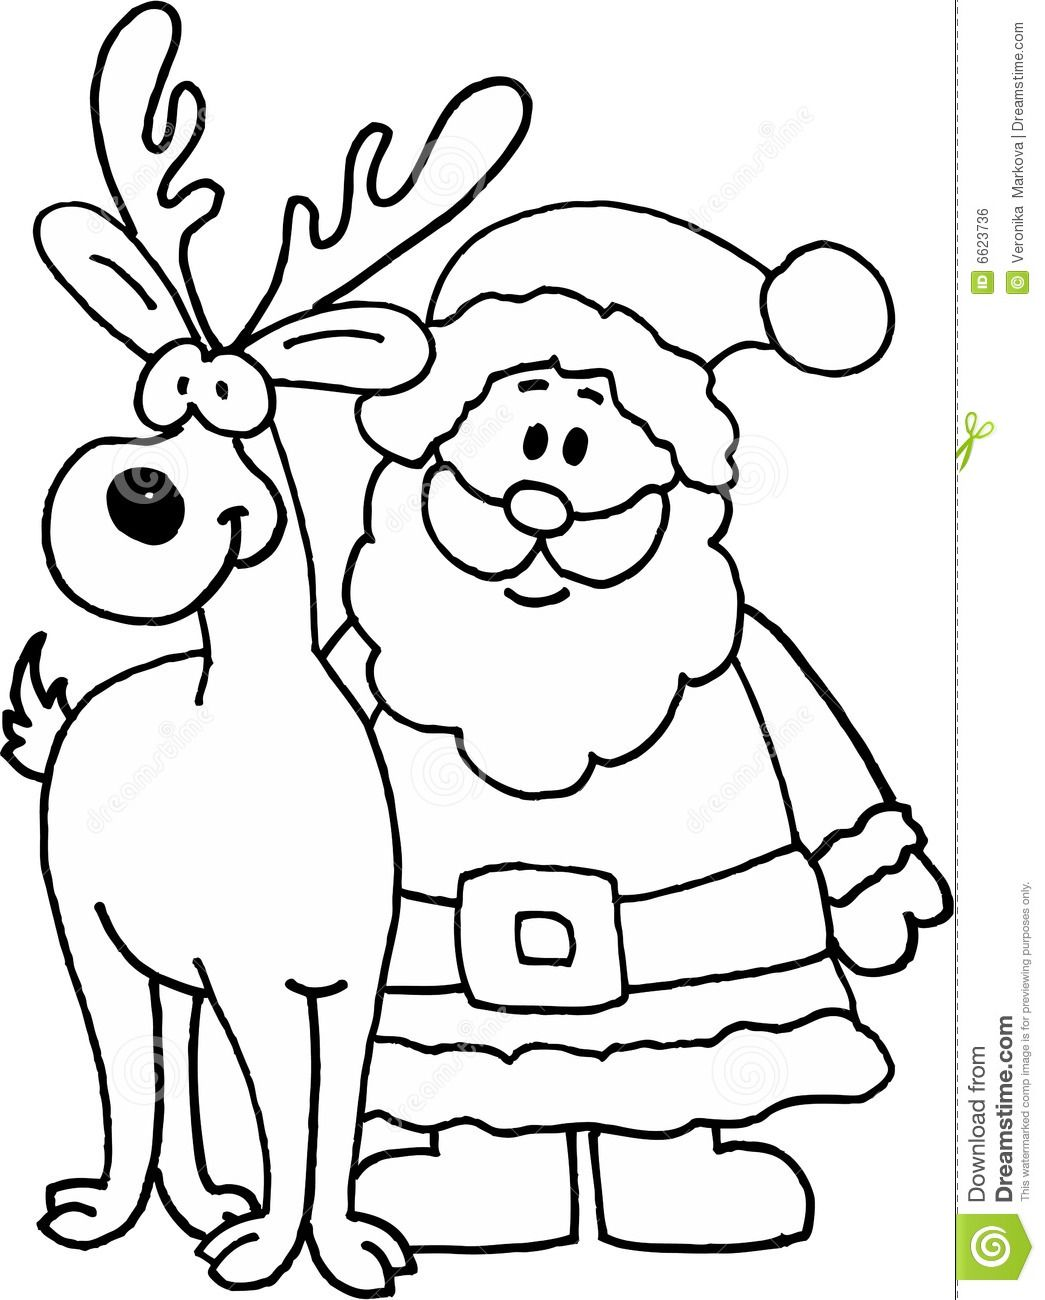 santa claus and reindeer drawings images pictures becuo reindeer drawing colorful flowers